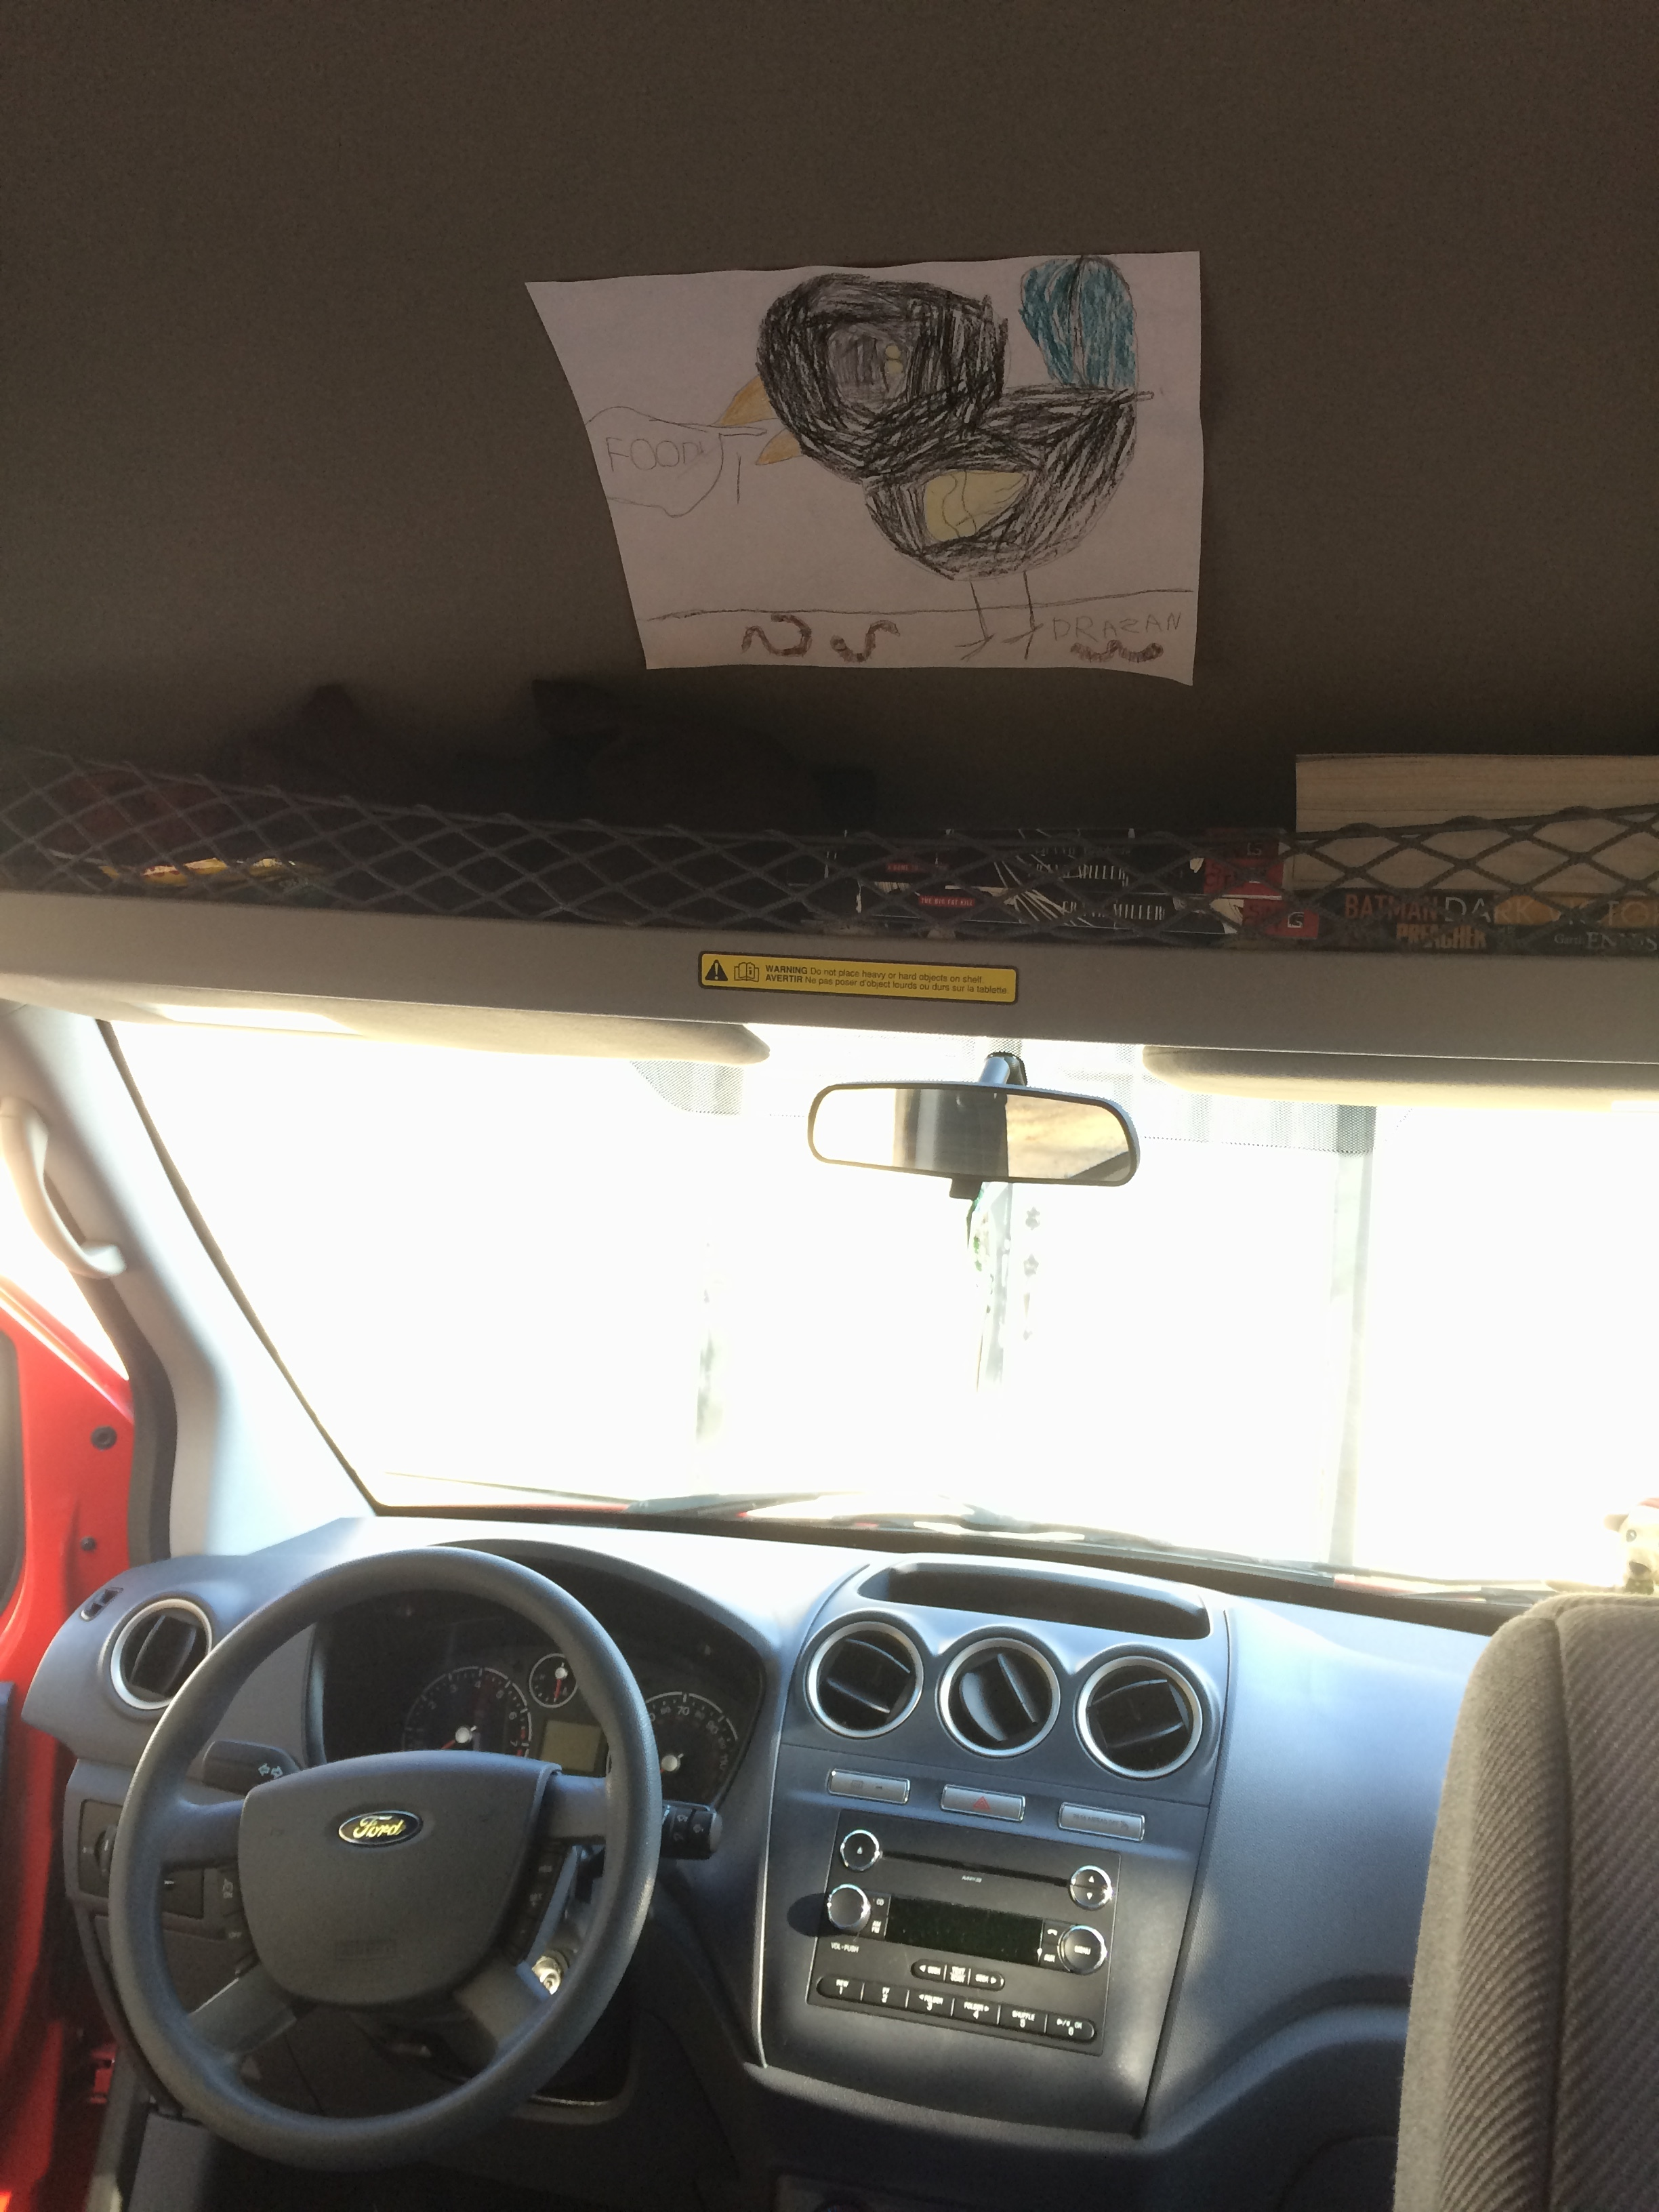 The van's getting decorated with fan art.